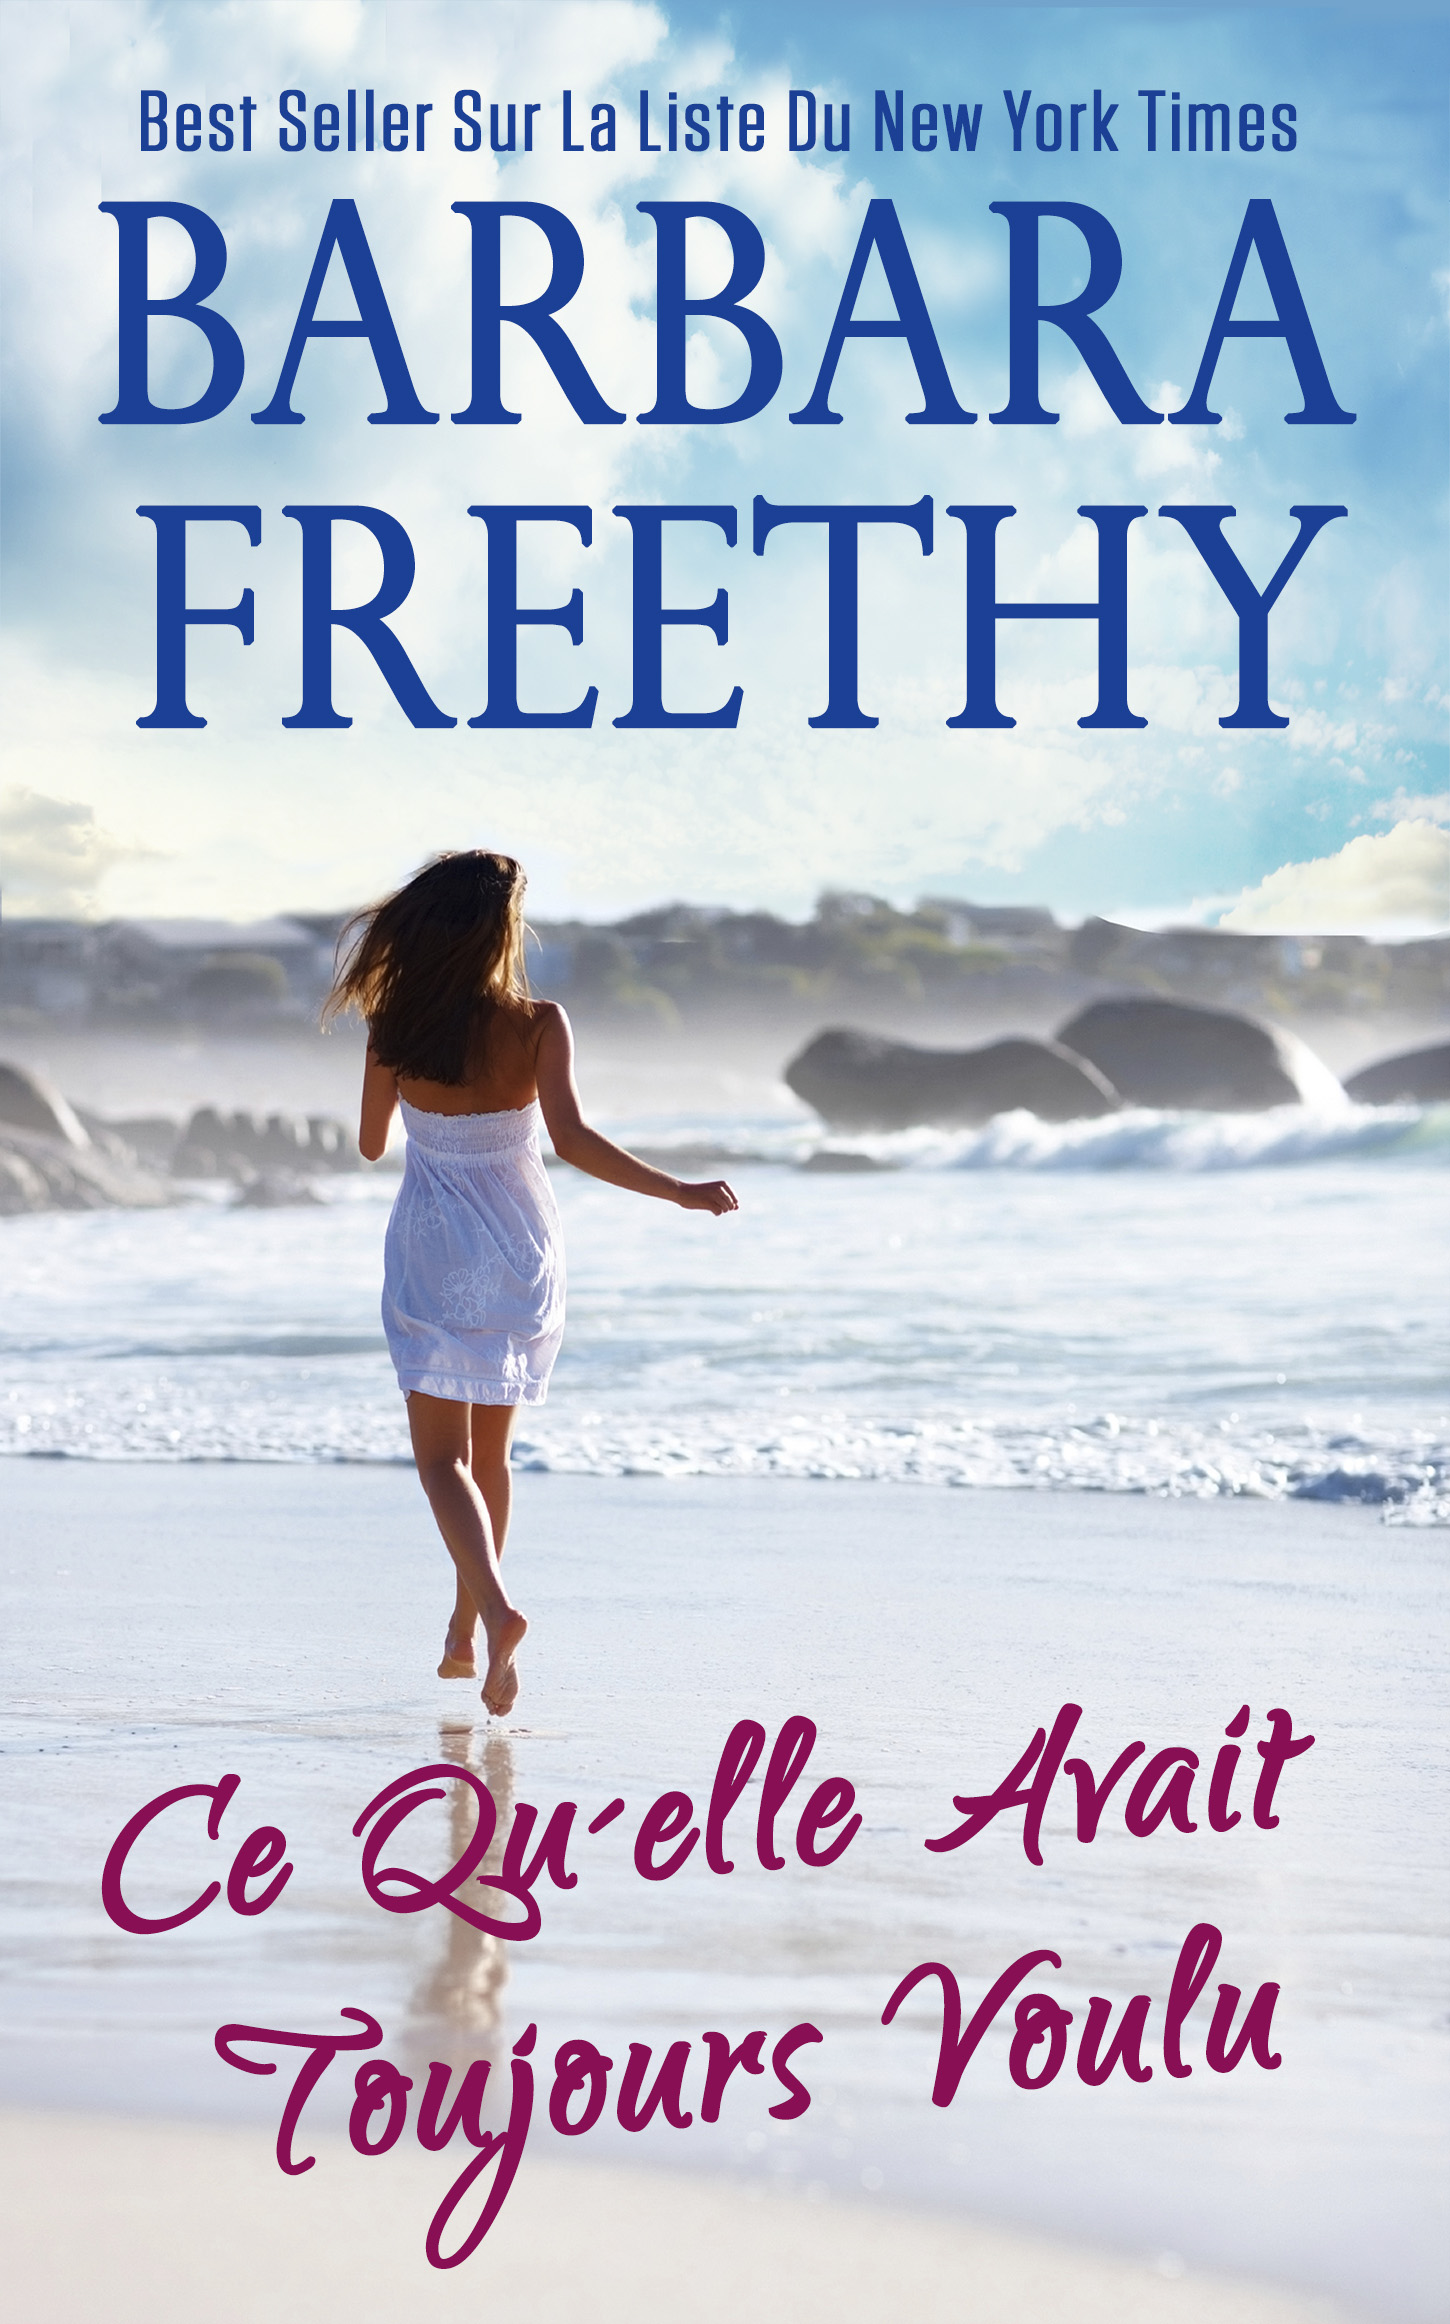 Ce Qu'elle Avait Toujours Voulu (All She Ever Wanted) by Barbara Freethy